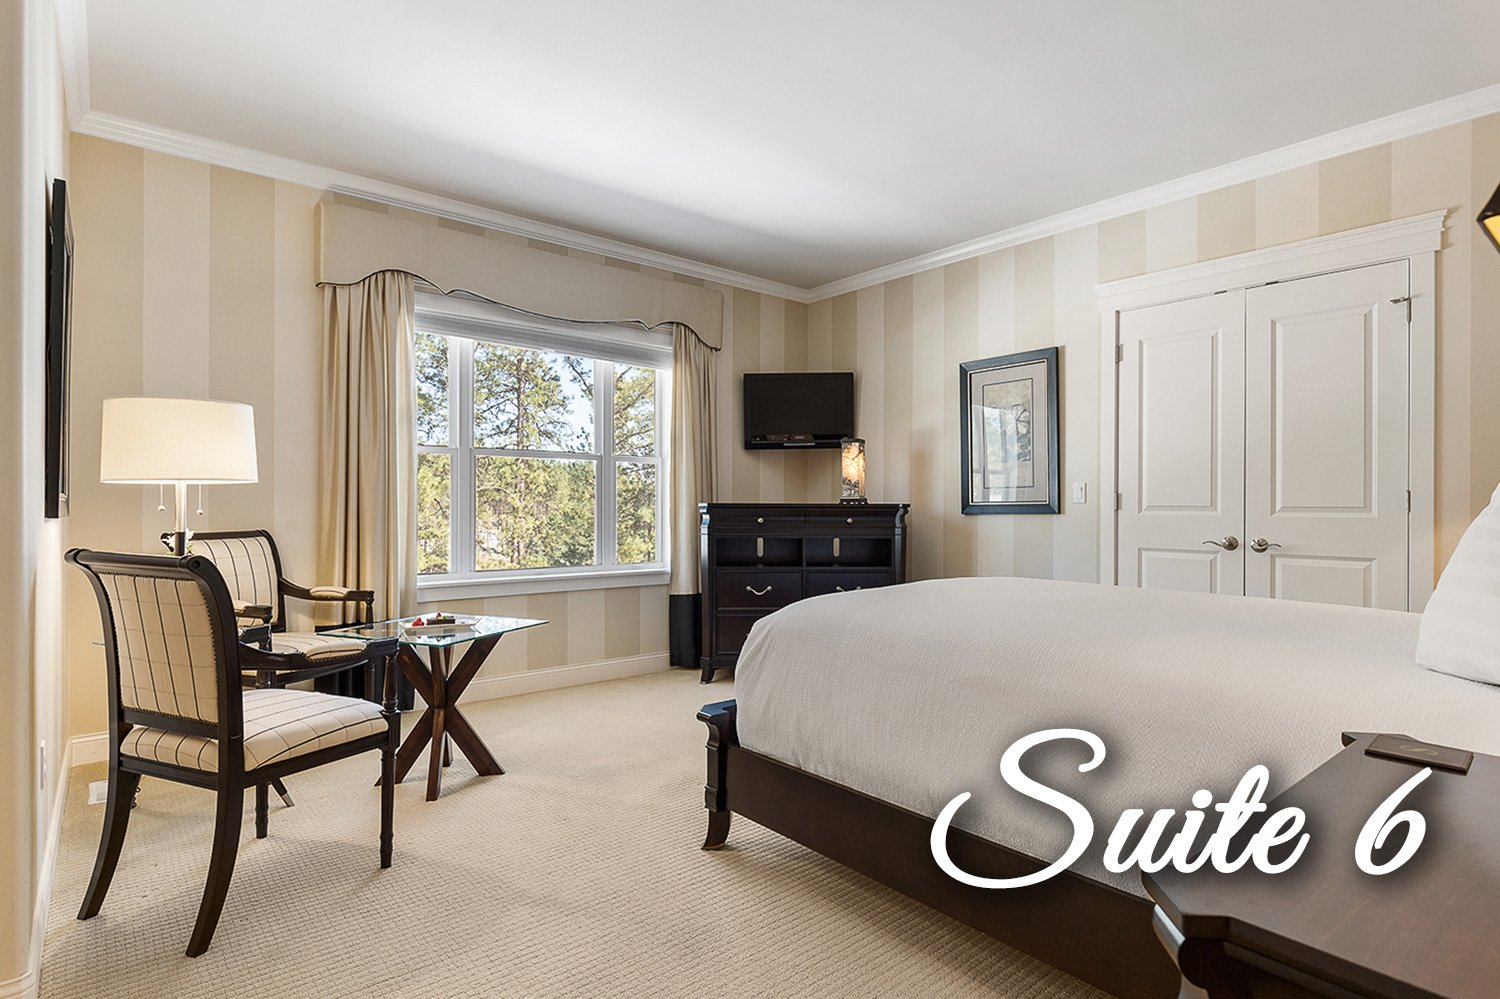 Suite 6 Bed and side tables